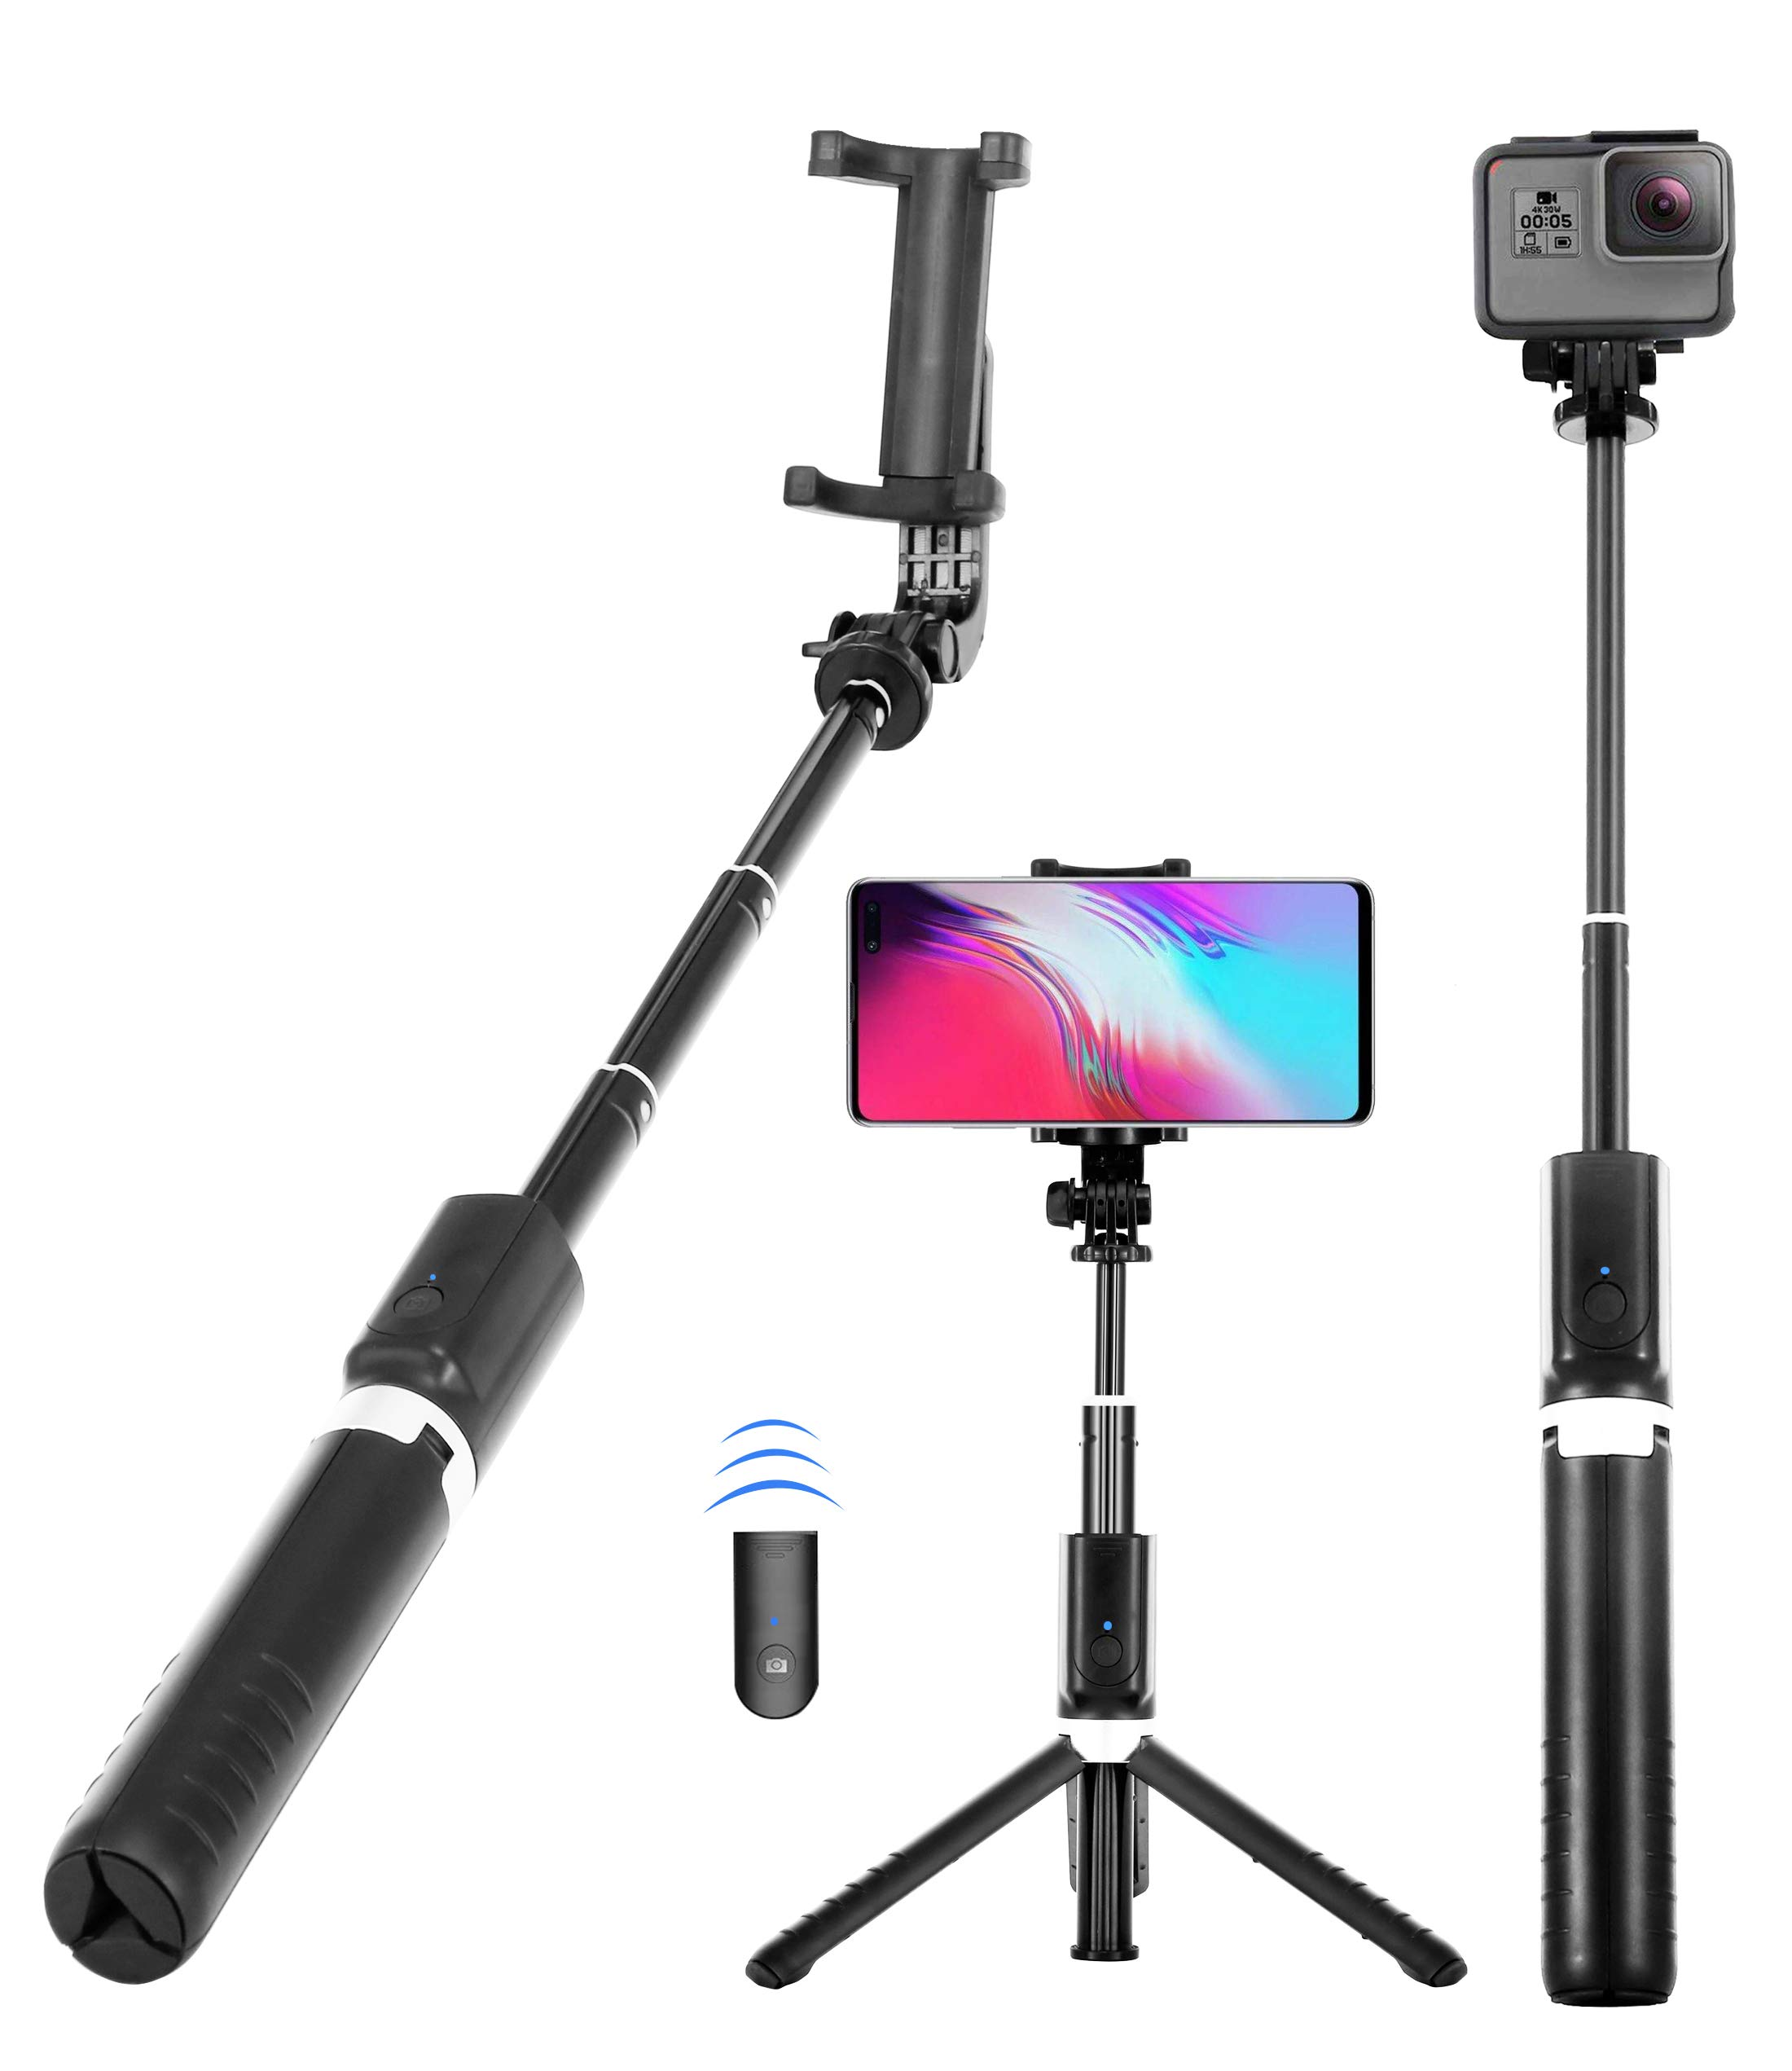 Selfie Stick, Upgrade 32 inch Extendable Selfie Stick Tripod with Wireless Remote and Phone Tripod Selfie Stick for iPhone Xs XR MAX/iPhone 8/8 Plus/iPhone 7 Plus/Galaxy S9 Plus/Note 9/8/LG/Gopro